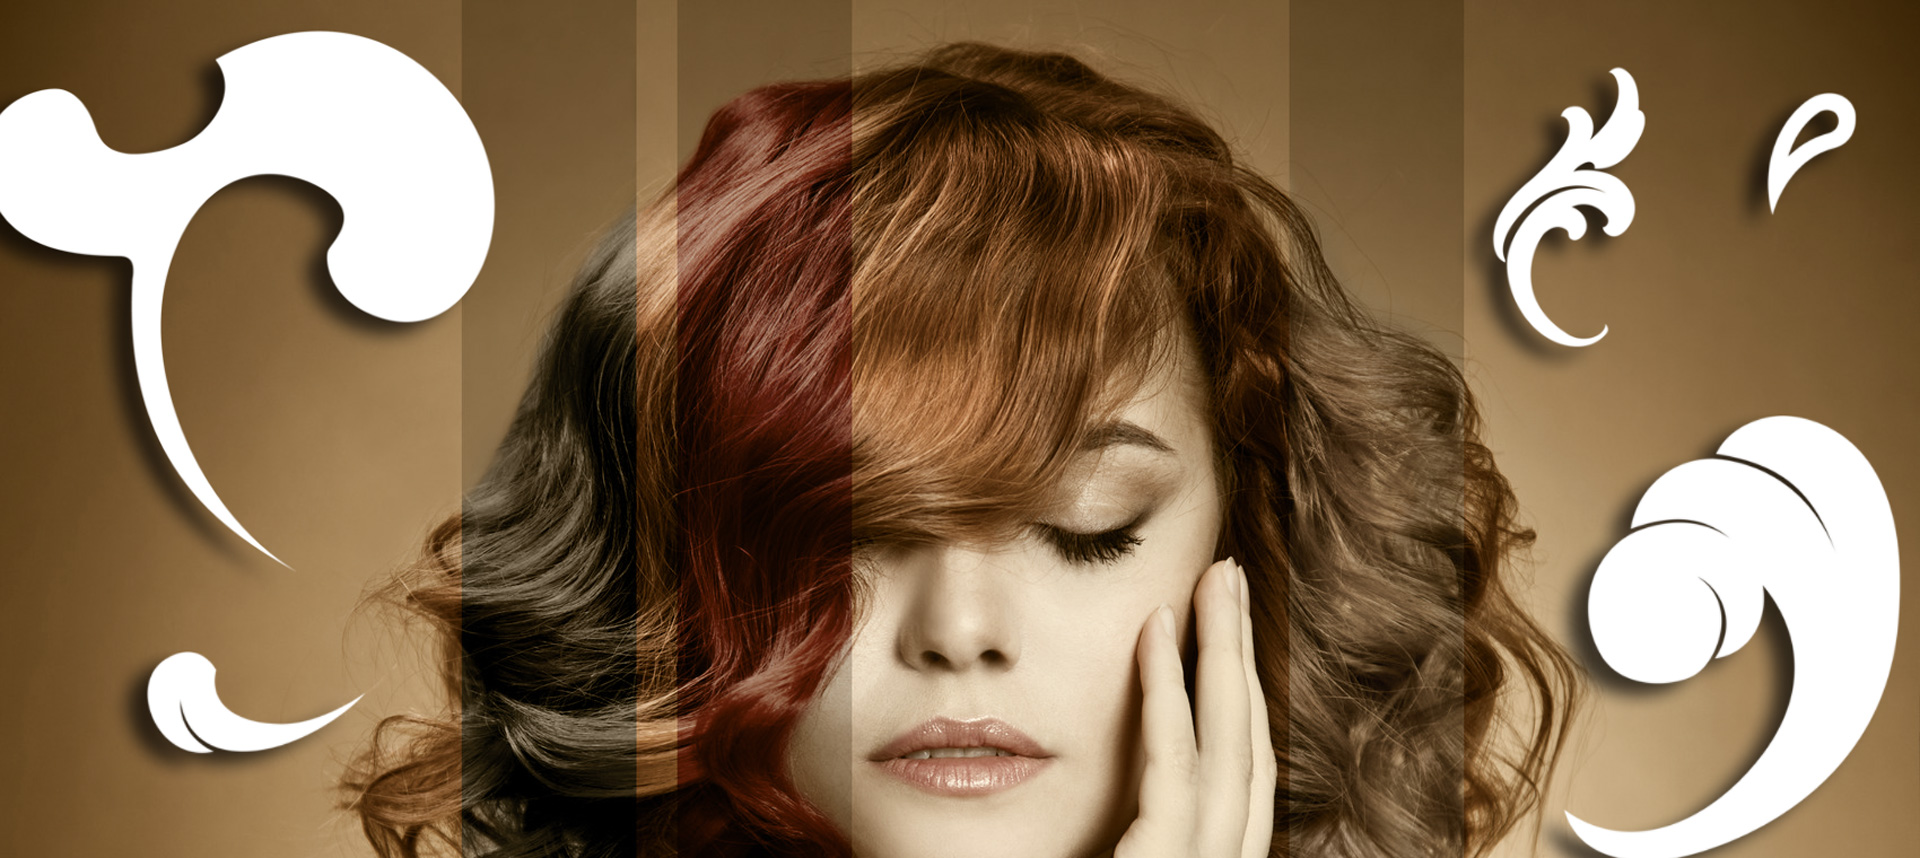 Hair Color Services : Hair Color Treatment Colorado Springs Eye Candy Salon & Blow Dry Bar